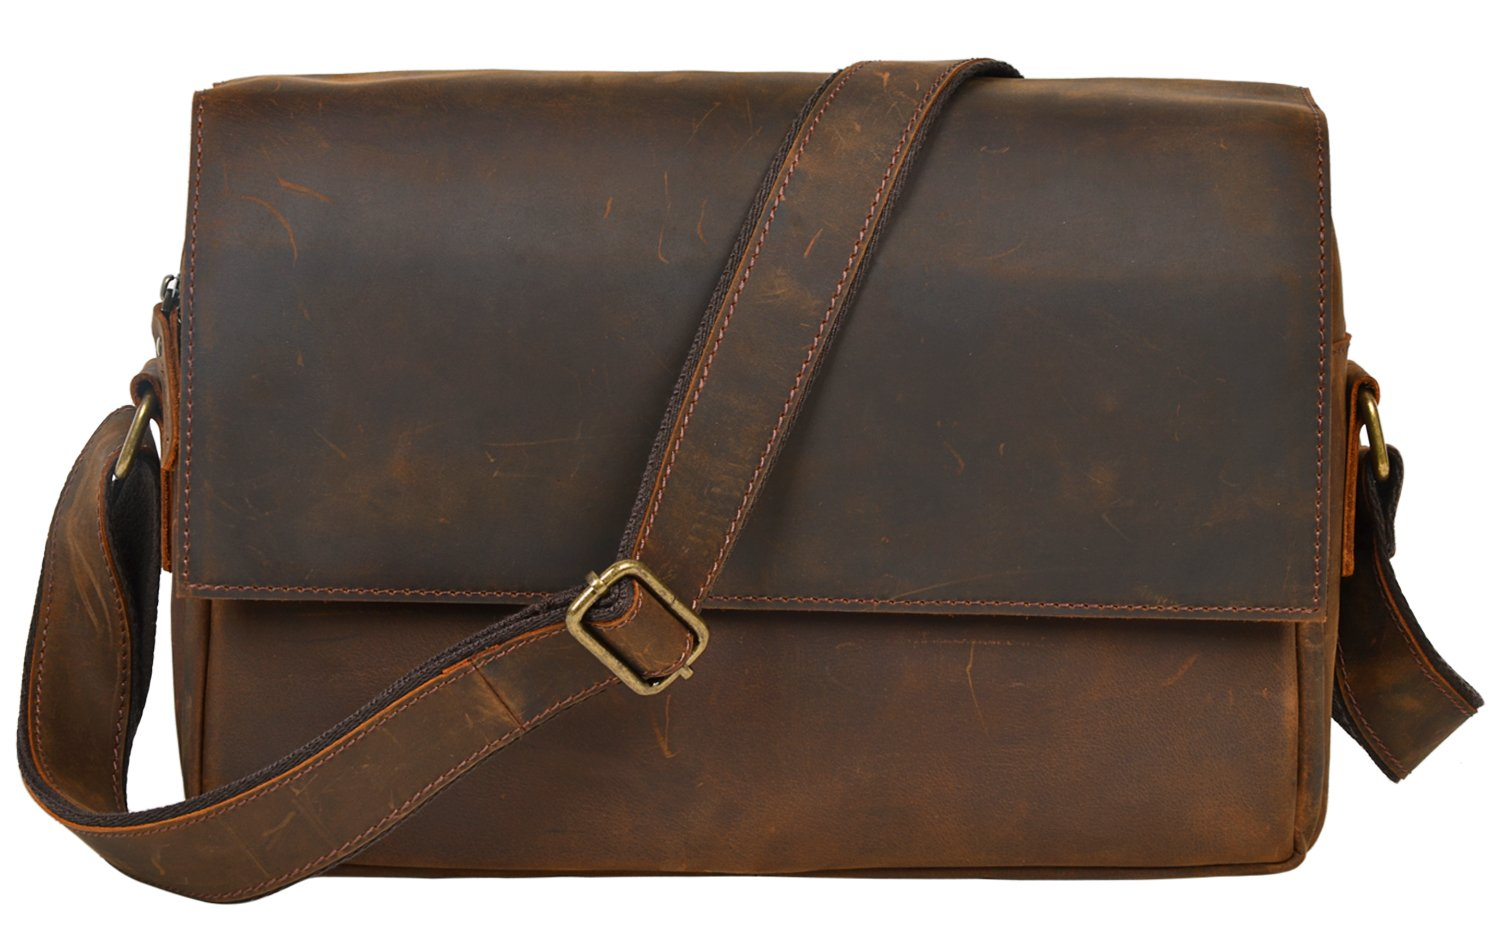 ALTOSY Leather Messenger Bag Laptop Briefcase Cross Body Shoulder Bag 6600 (Brown)